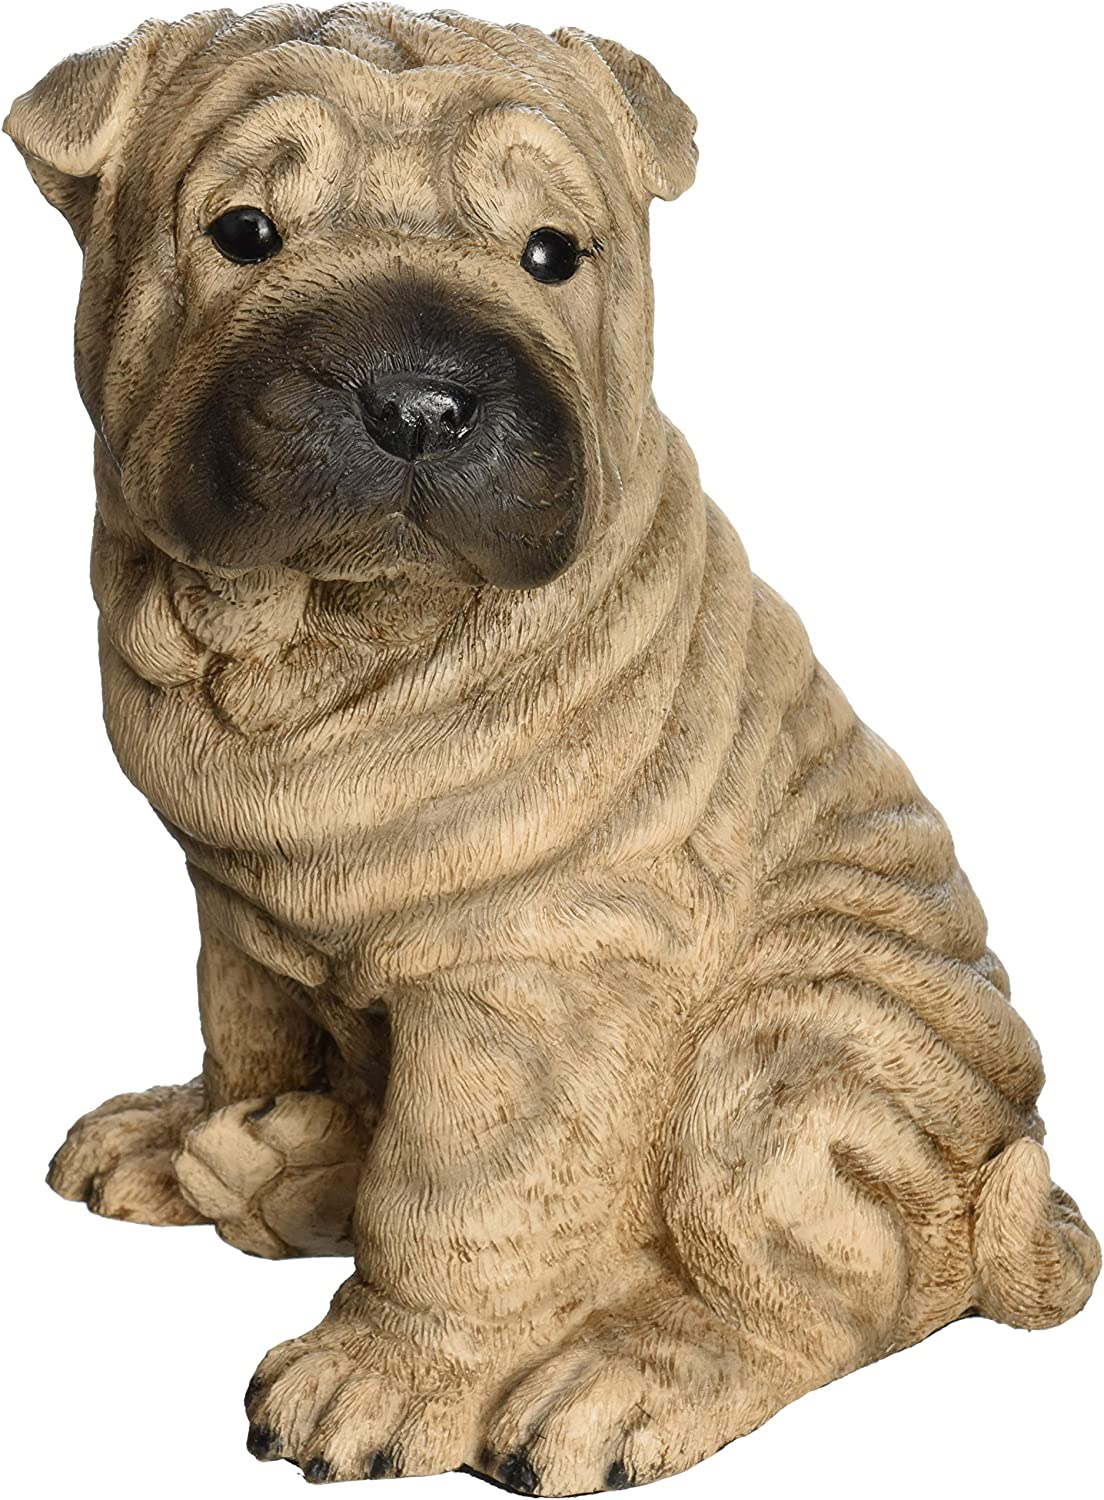 RED SHARPEI Dog Statue Stone Highly Detailed Garden Ornament